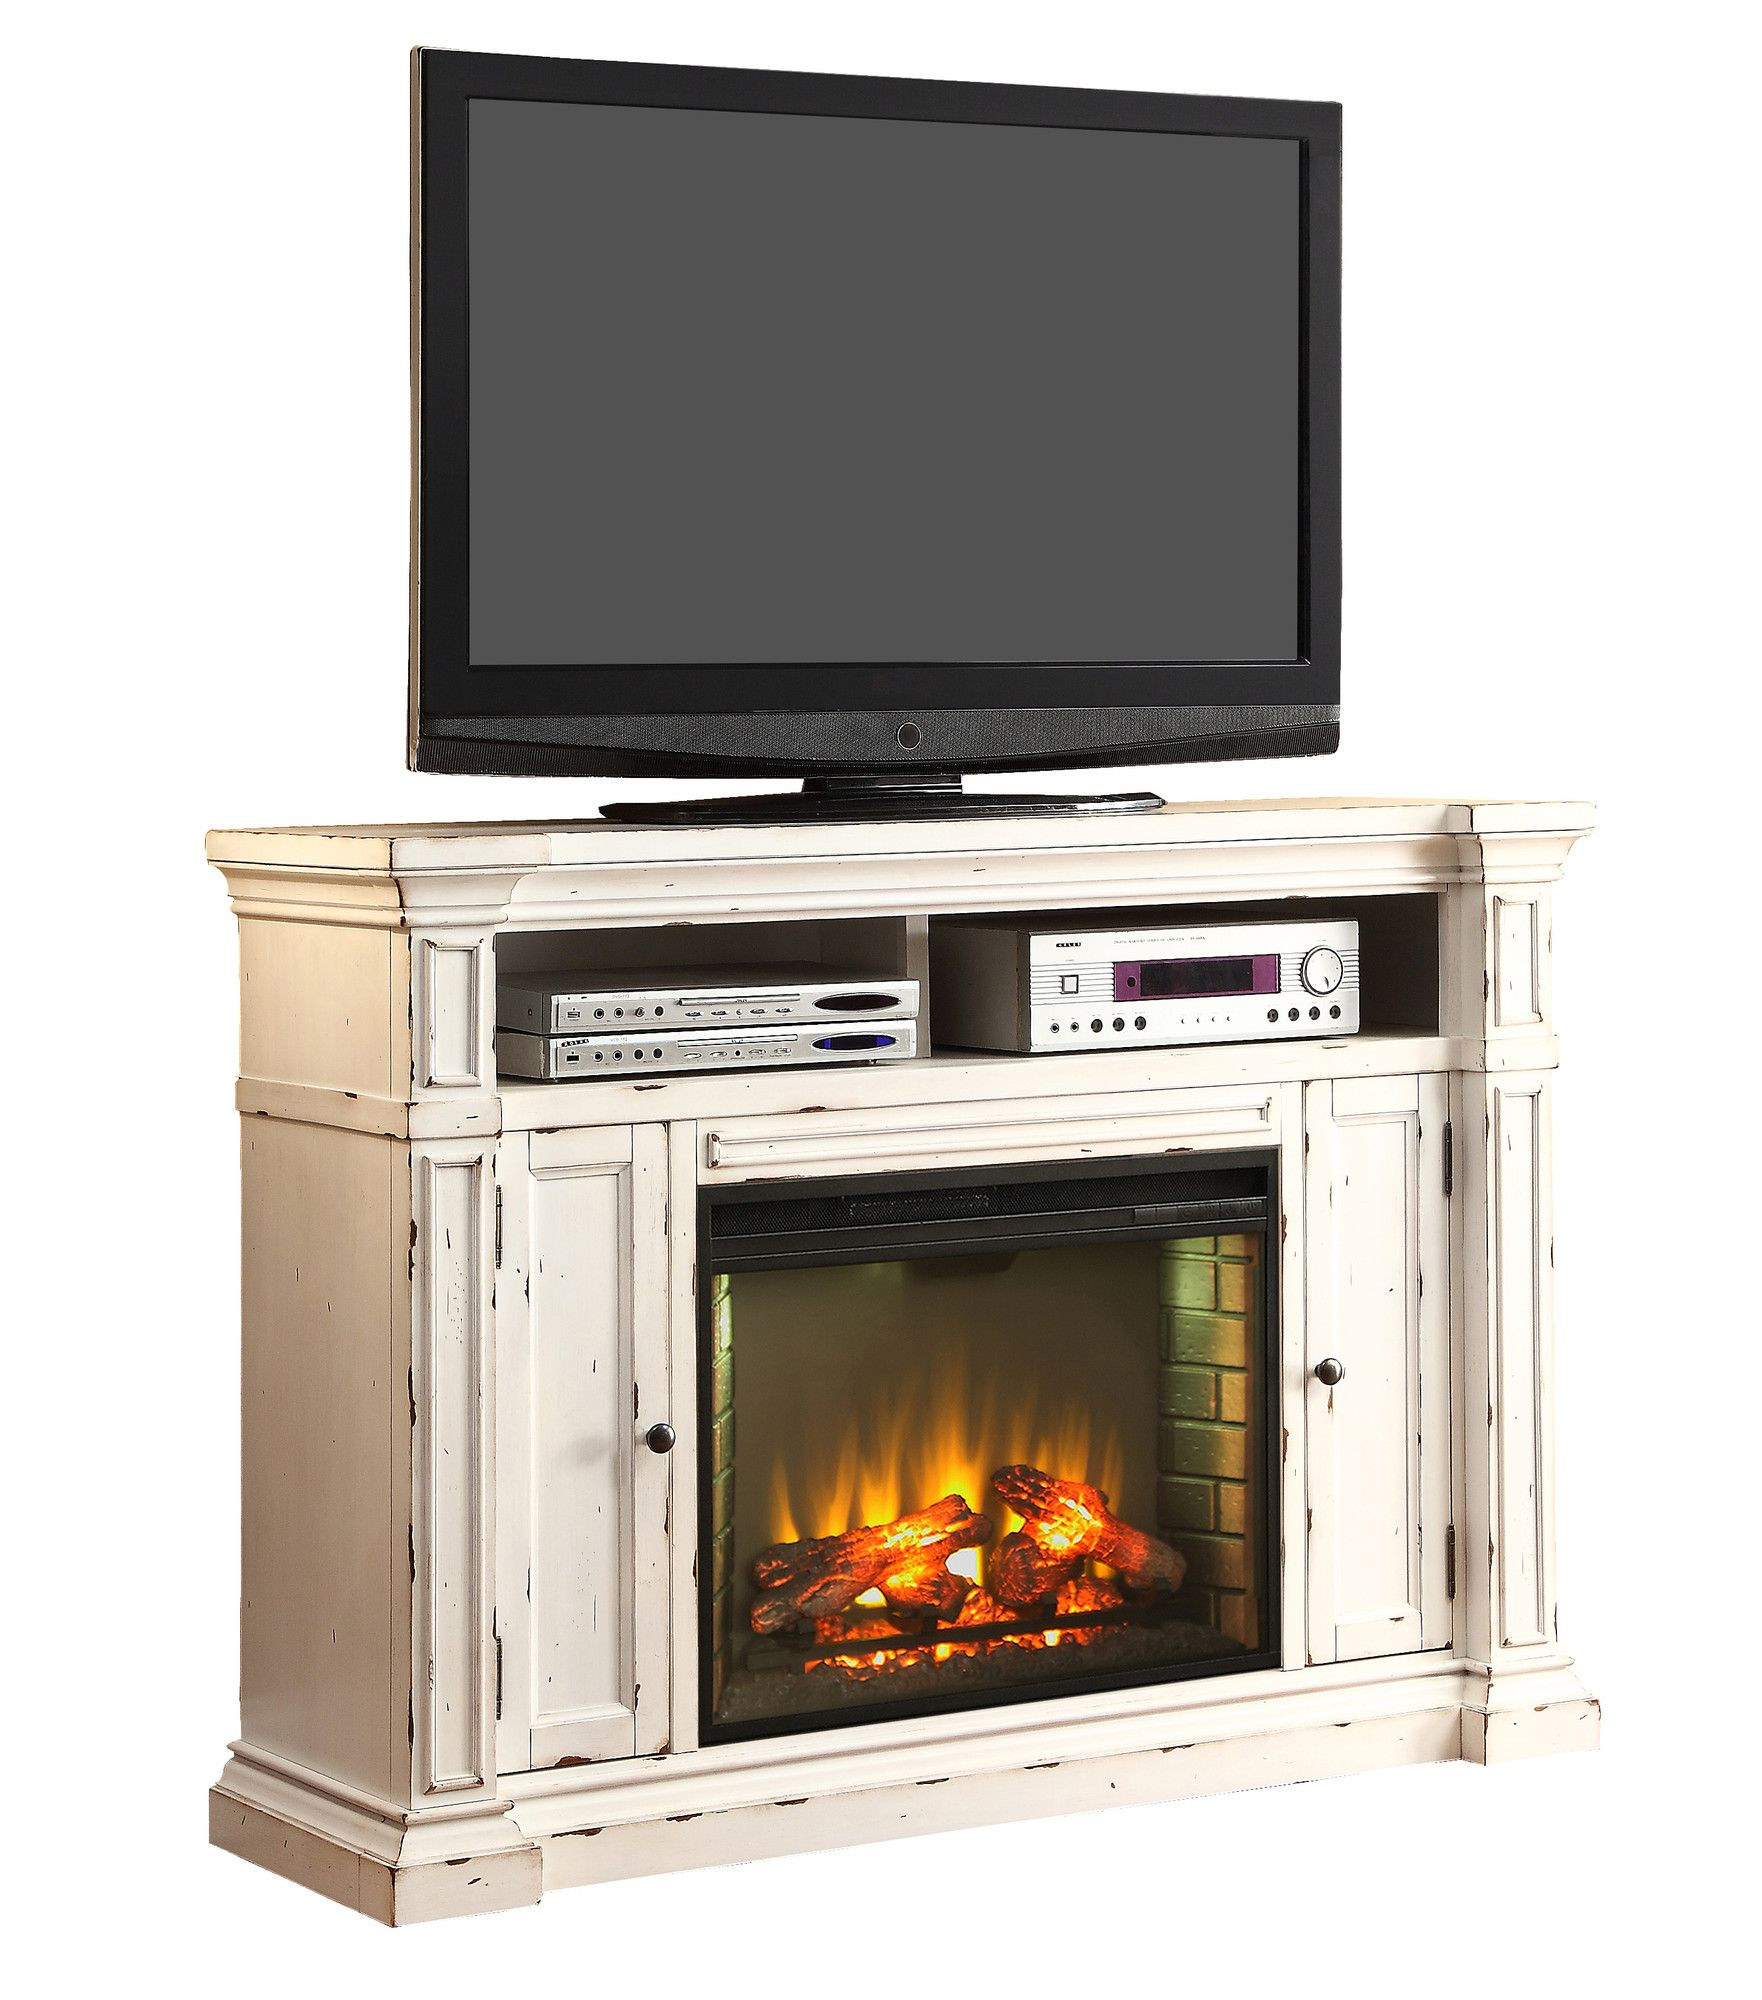 New Castle Tv Stand With Electric Fireplace Fireplace